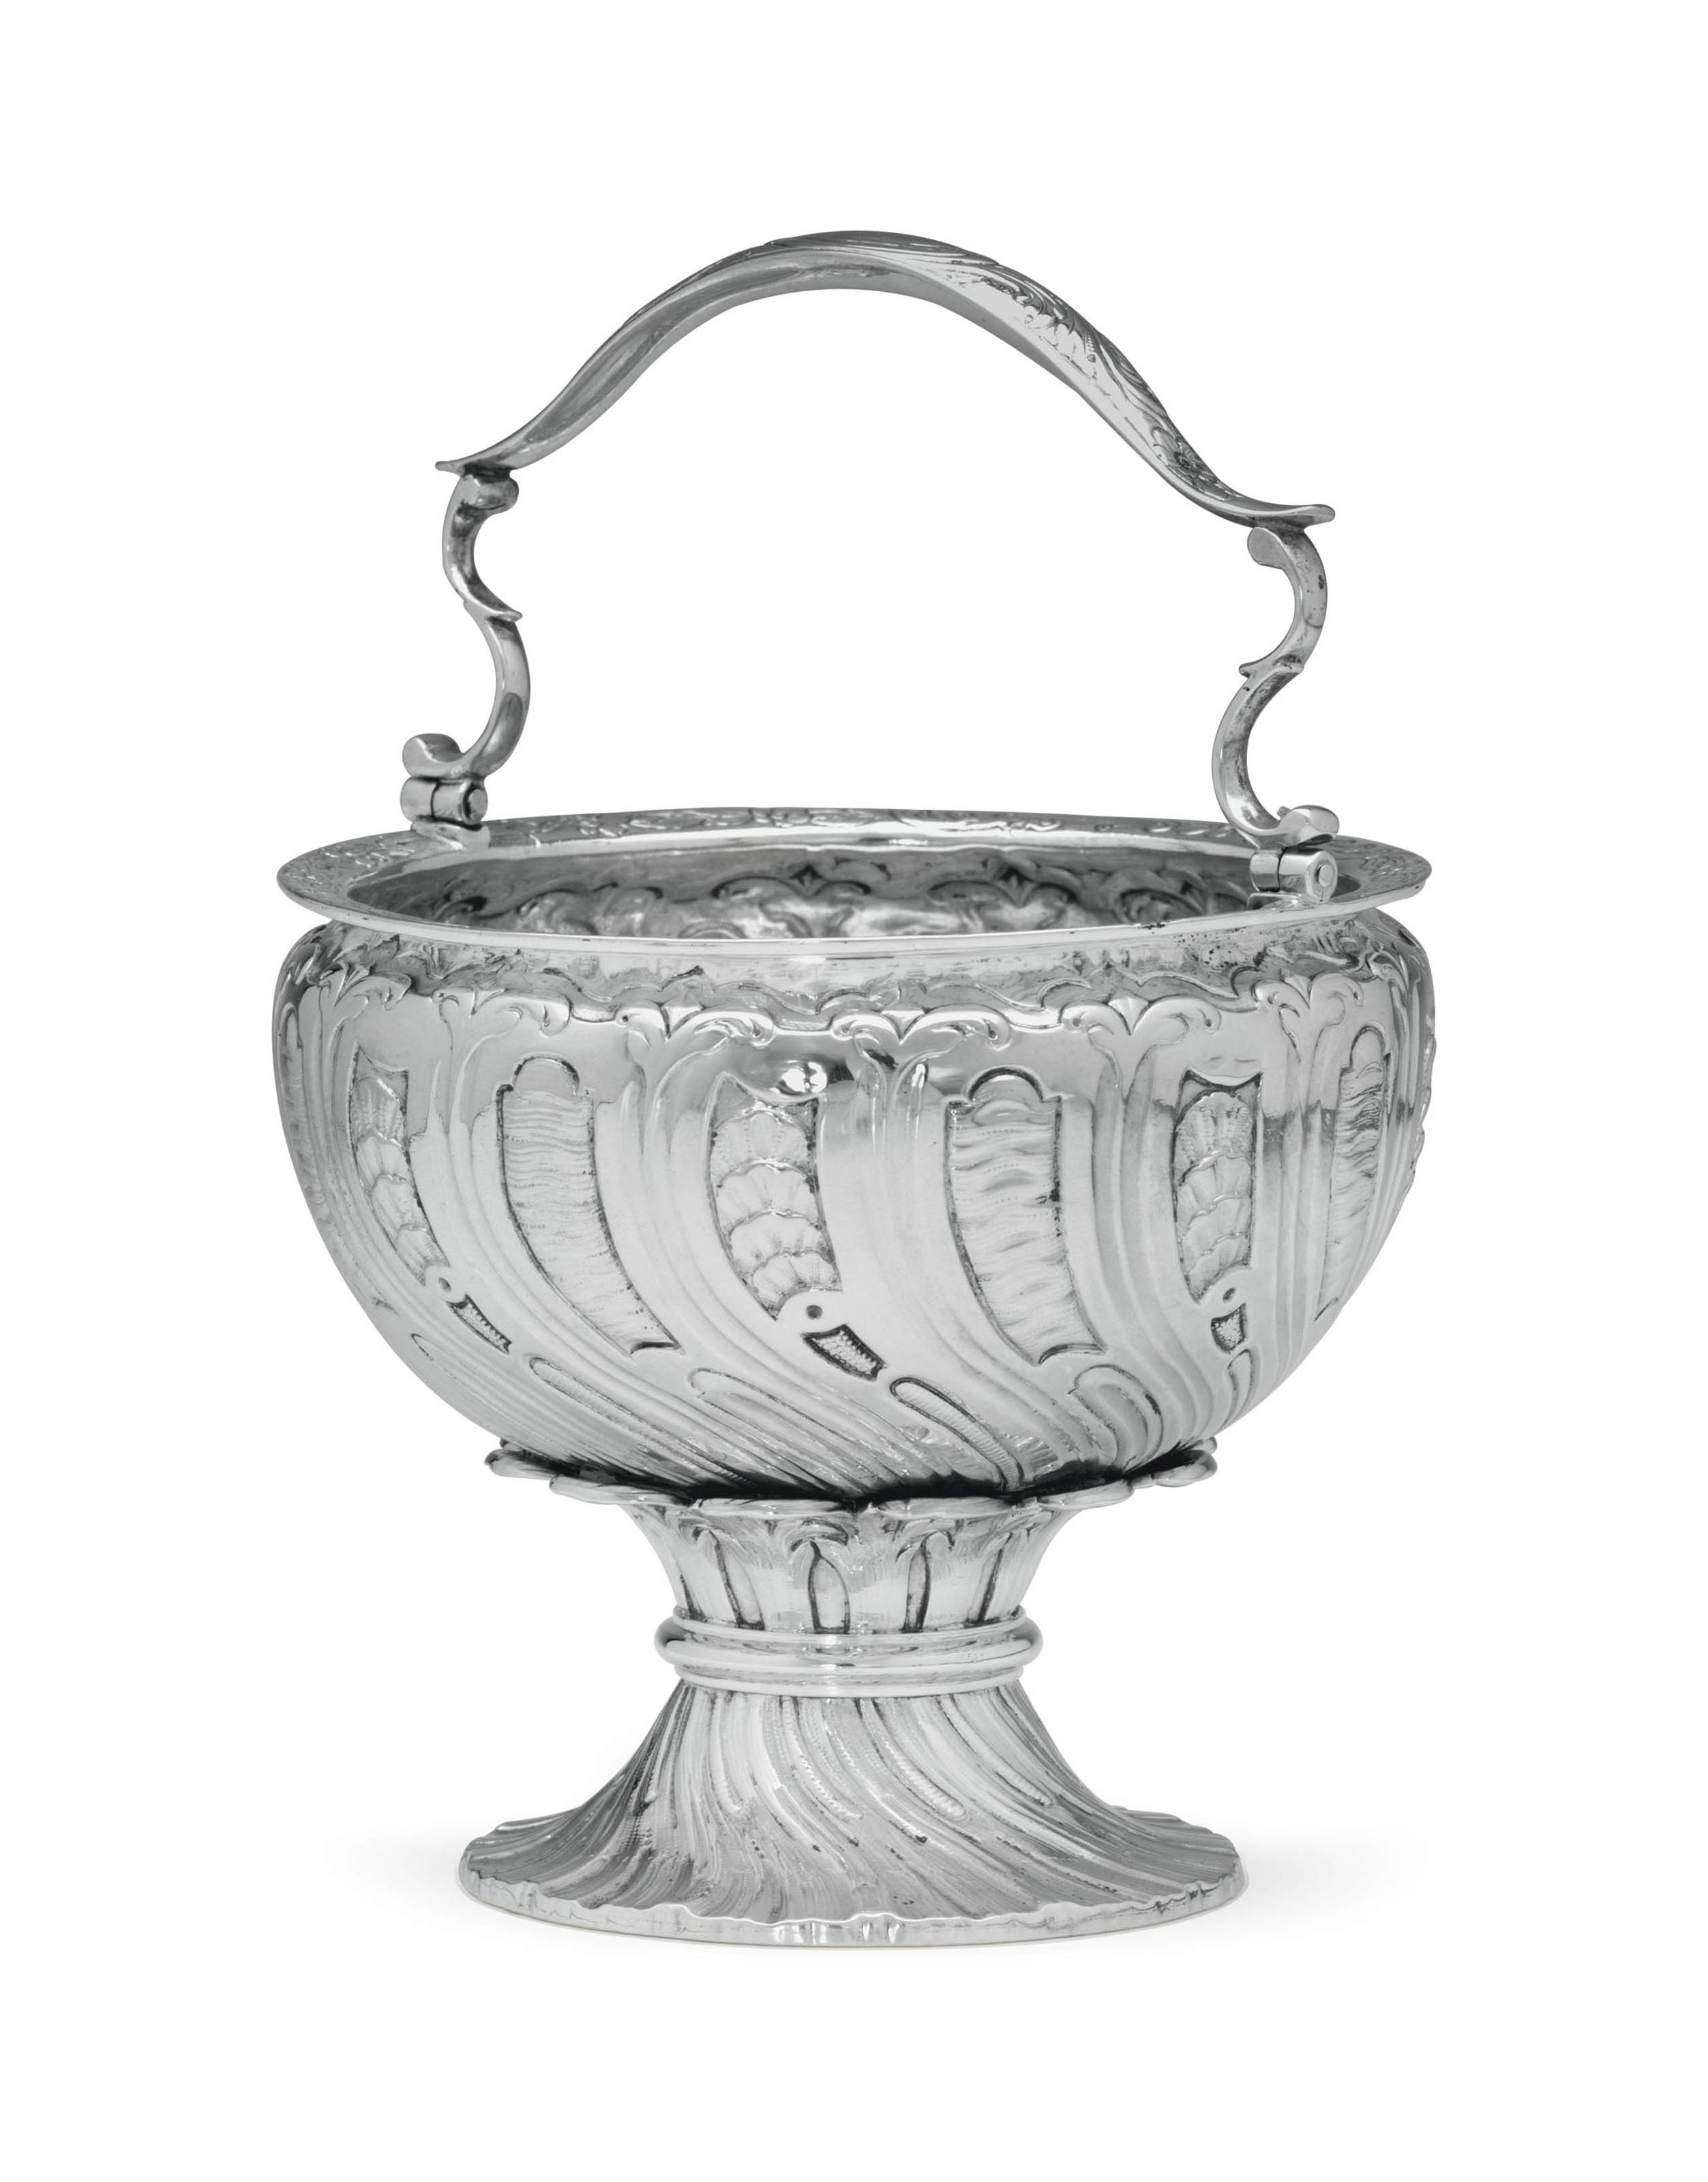 A GEORGE II SILVER HOLY WATER BUCKET